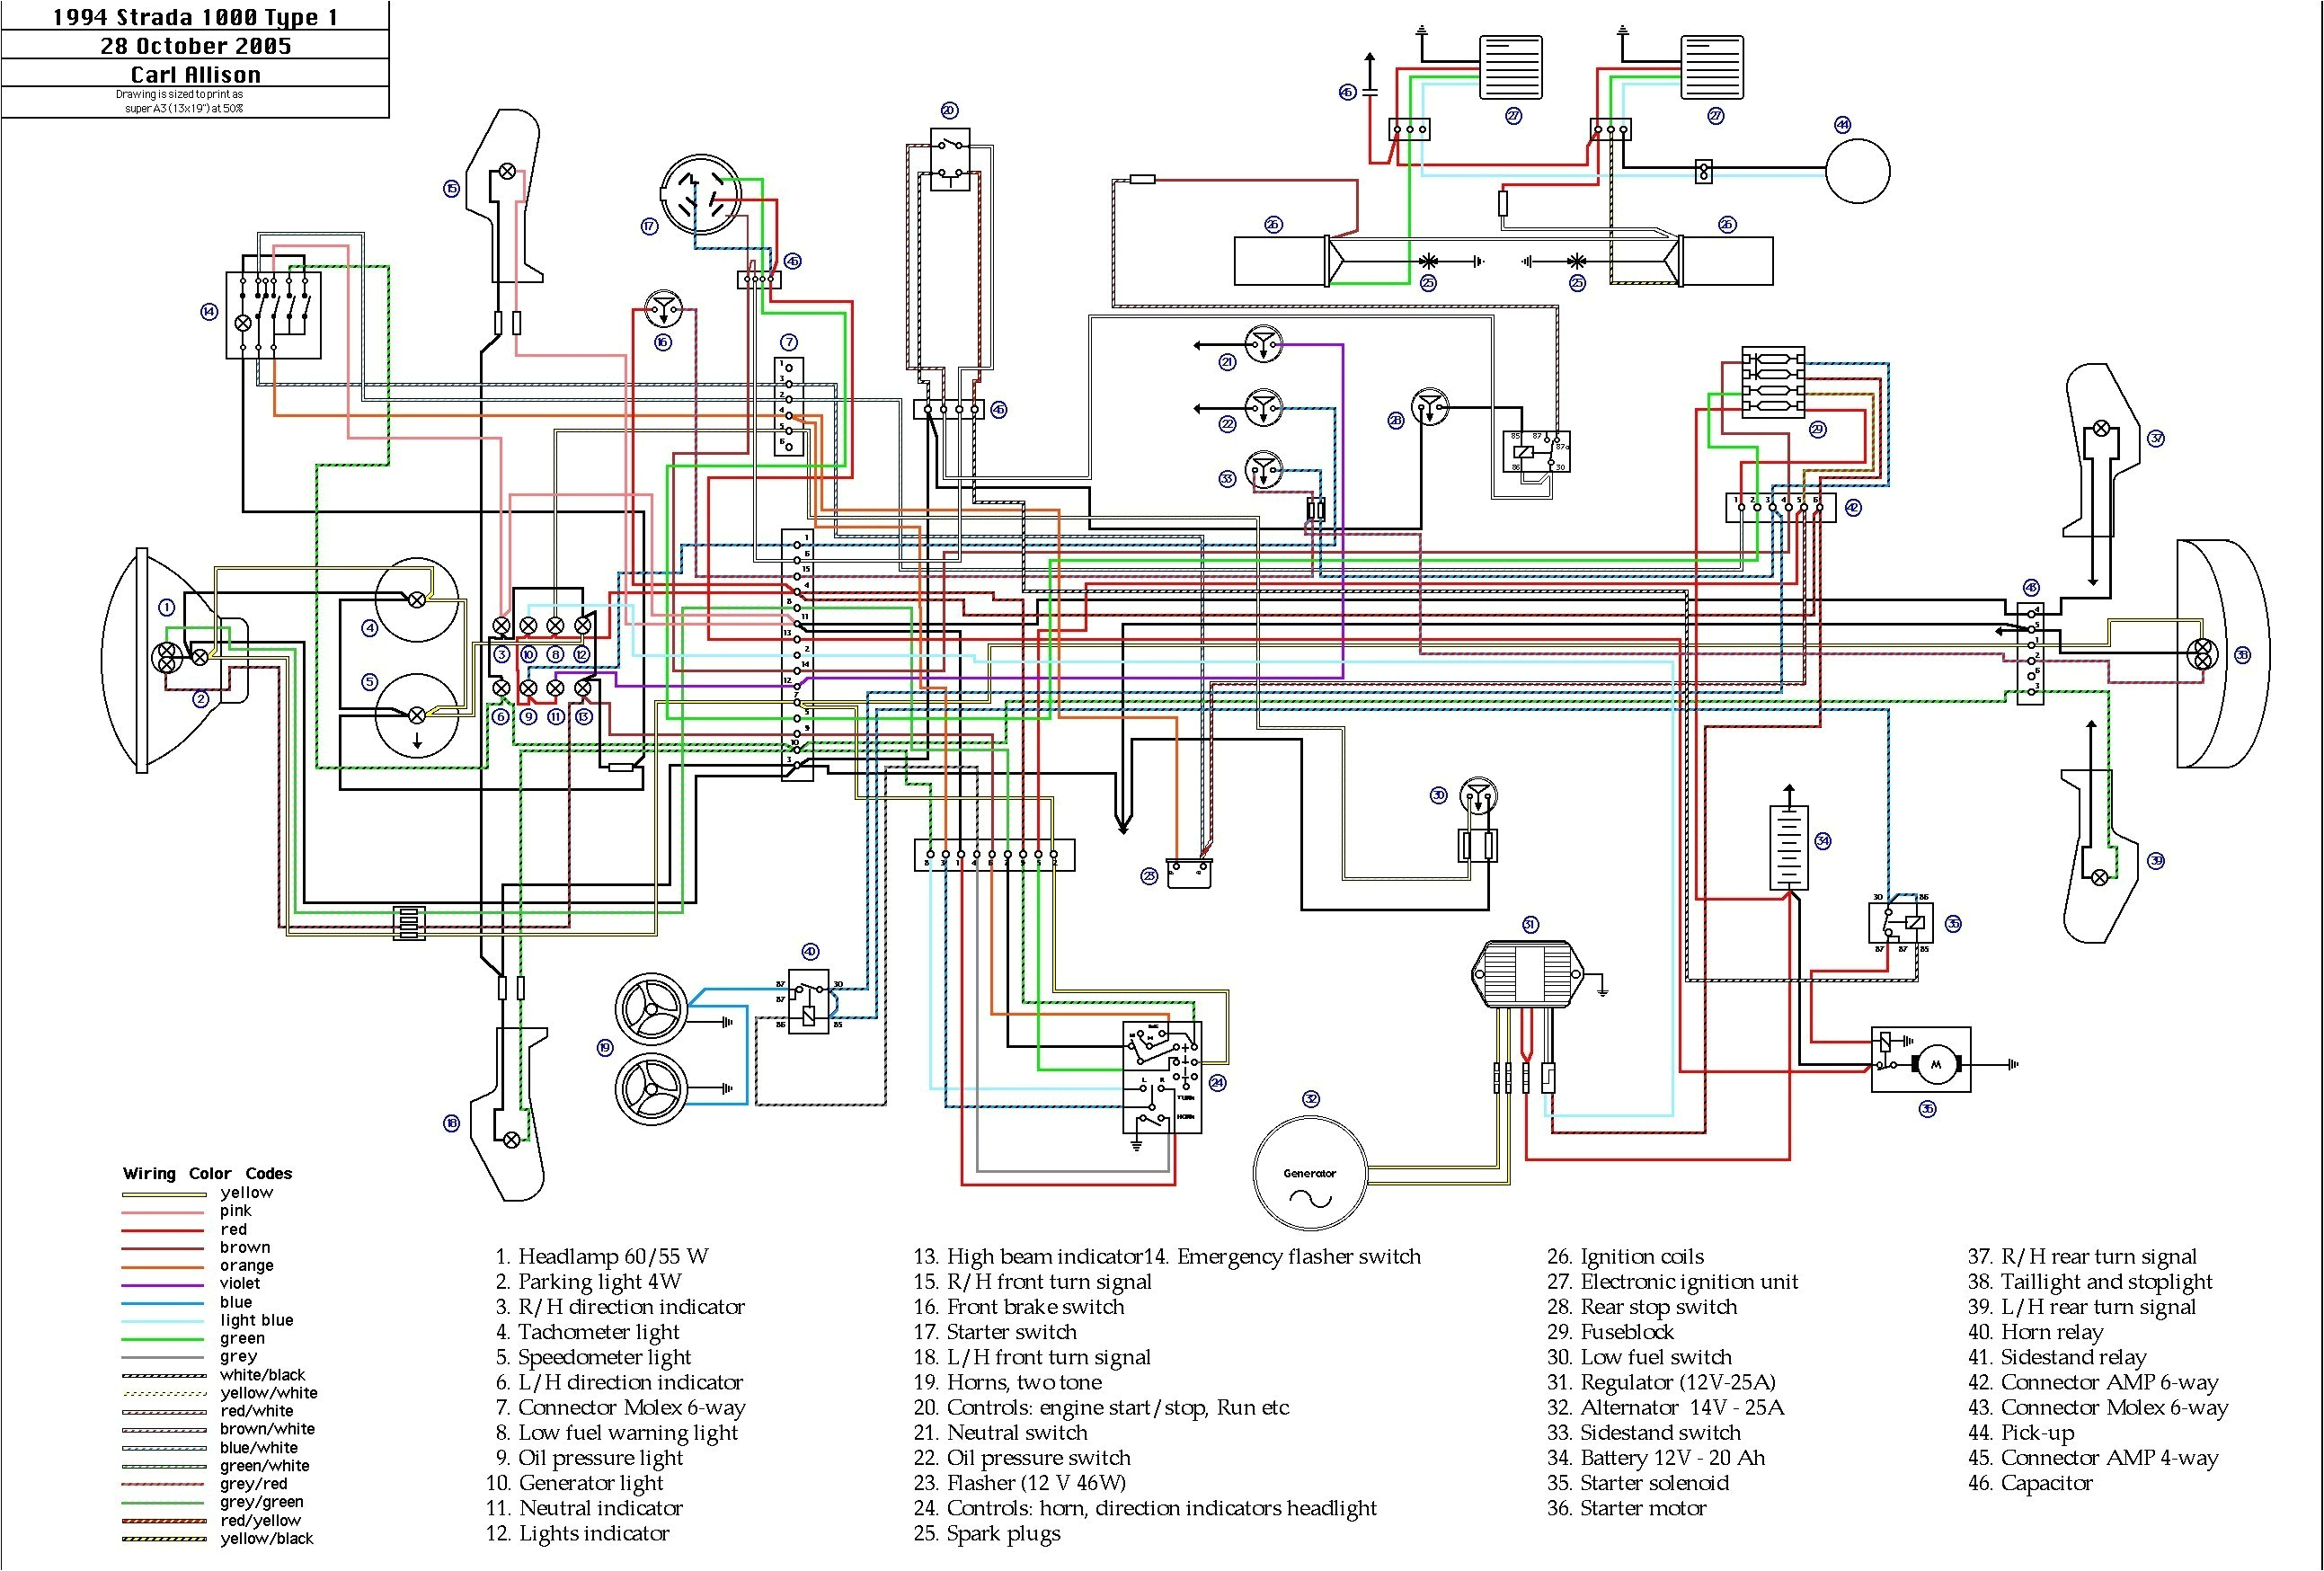 torque 8 wire diagram another blog about wiring diagram torque 8 wire diagram